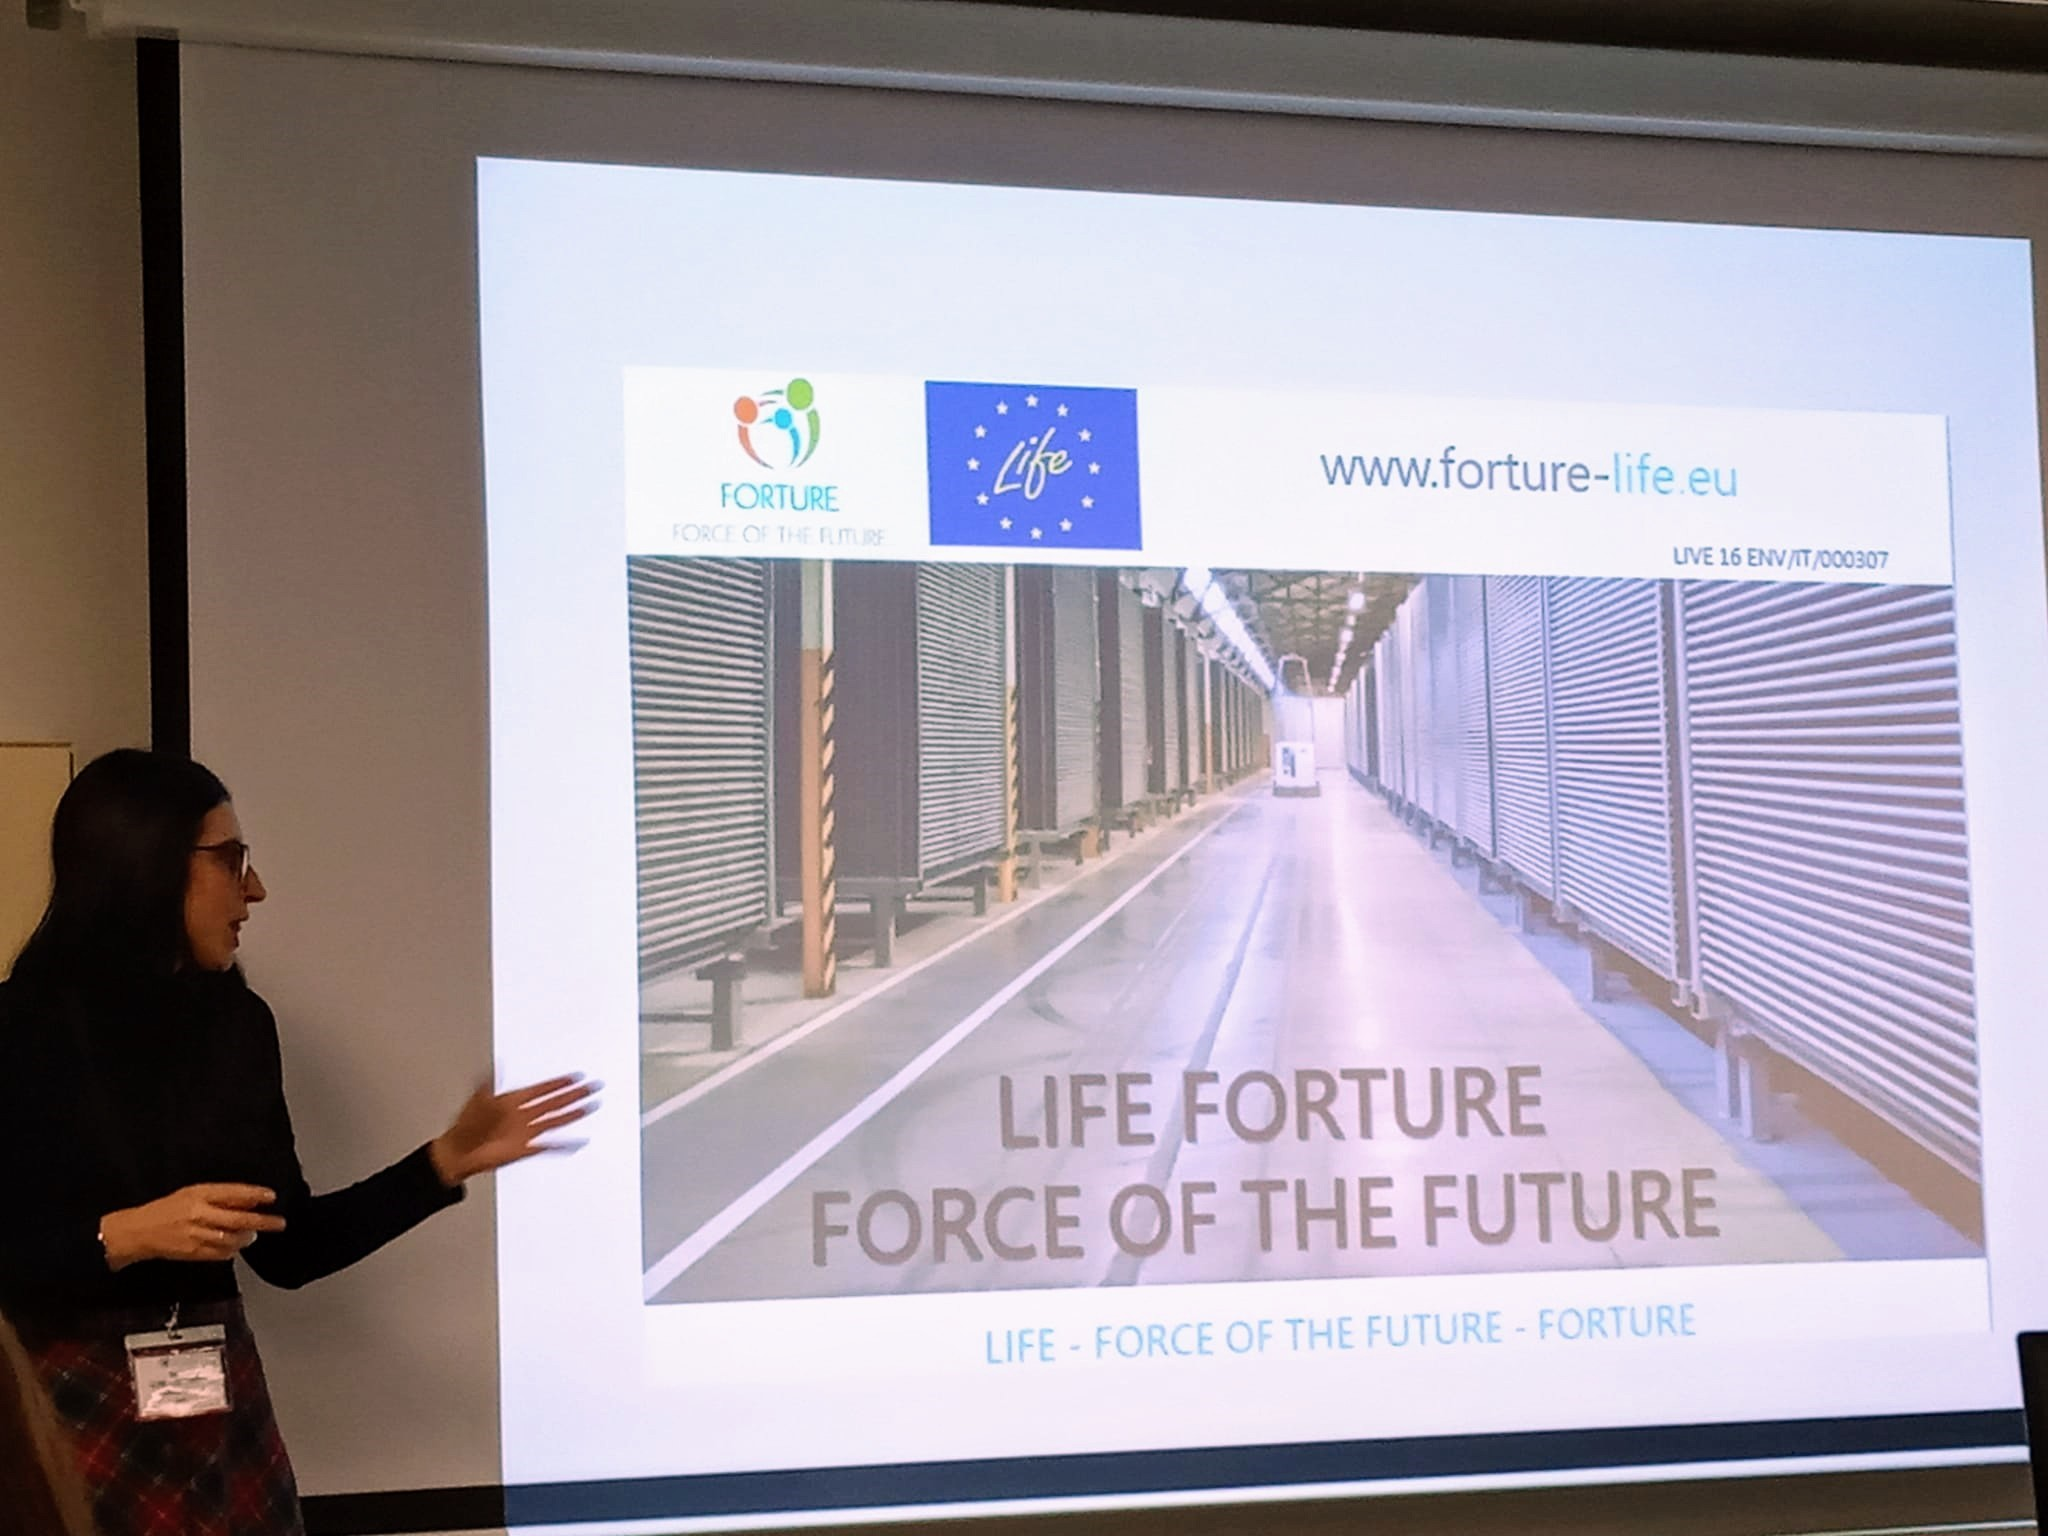 LIFE Forture at the International Conference on Digital Innovation